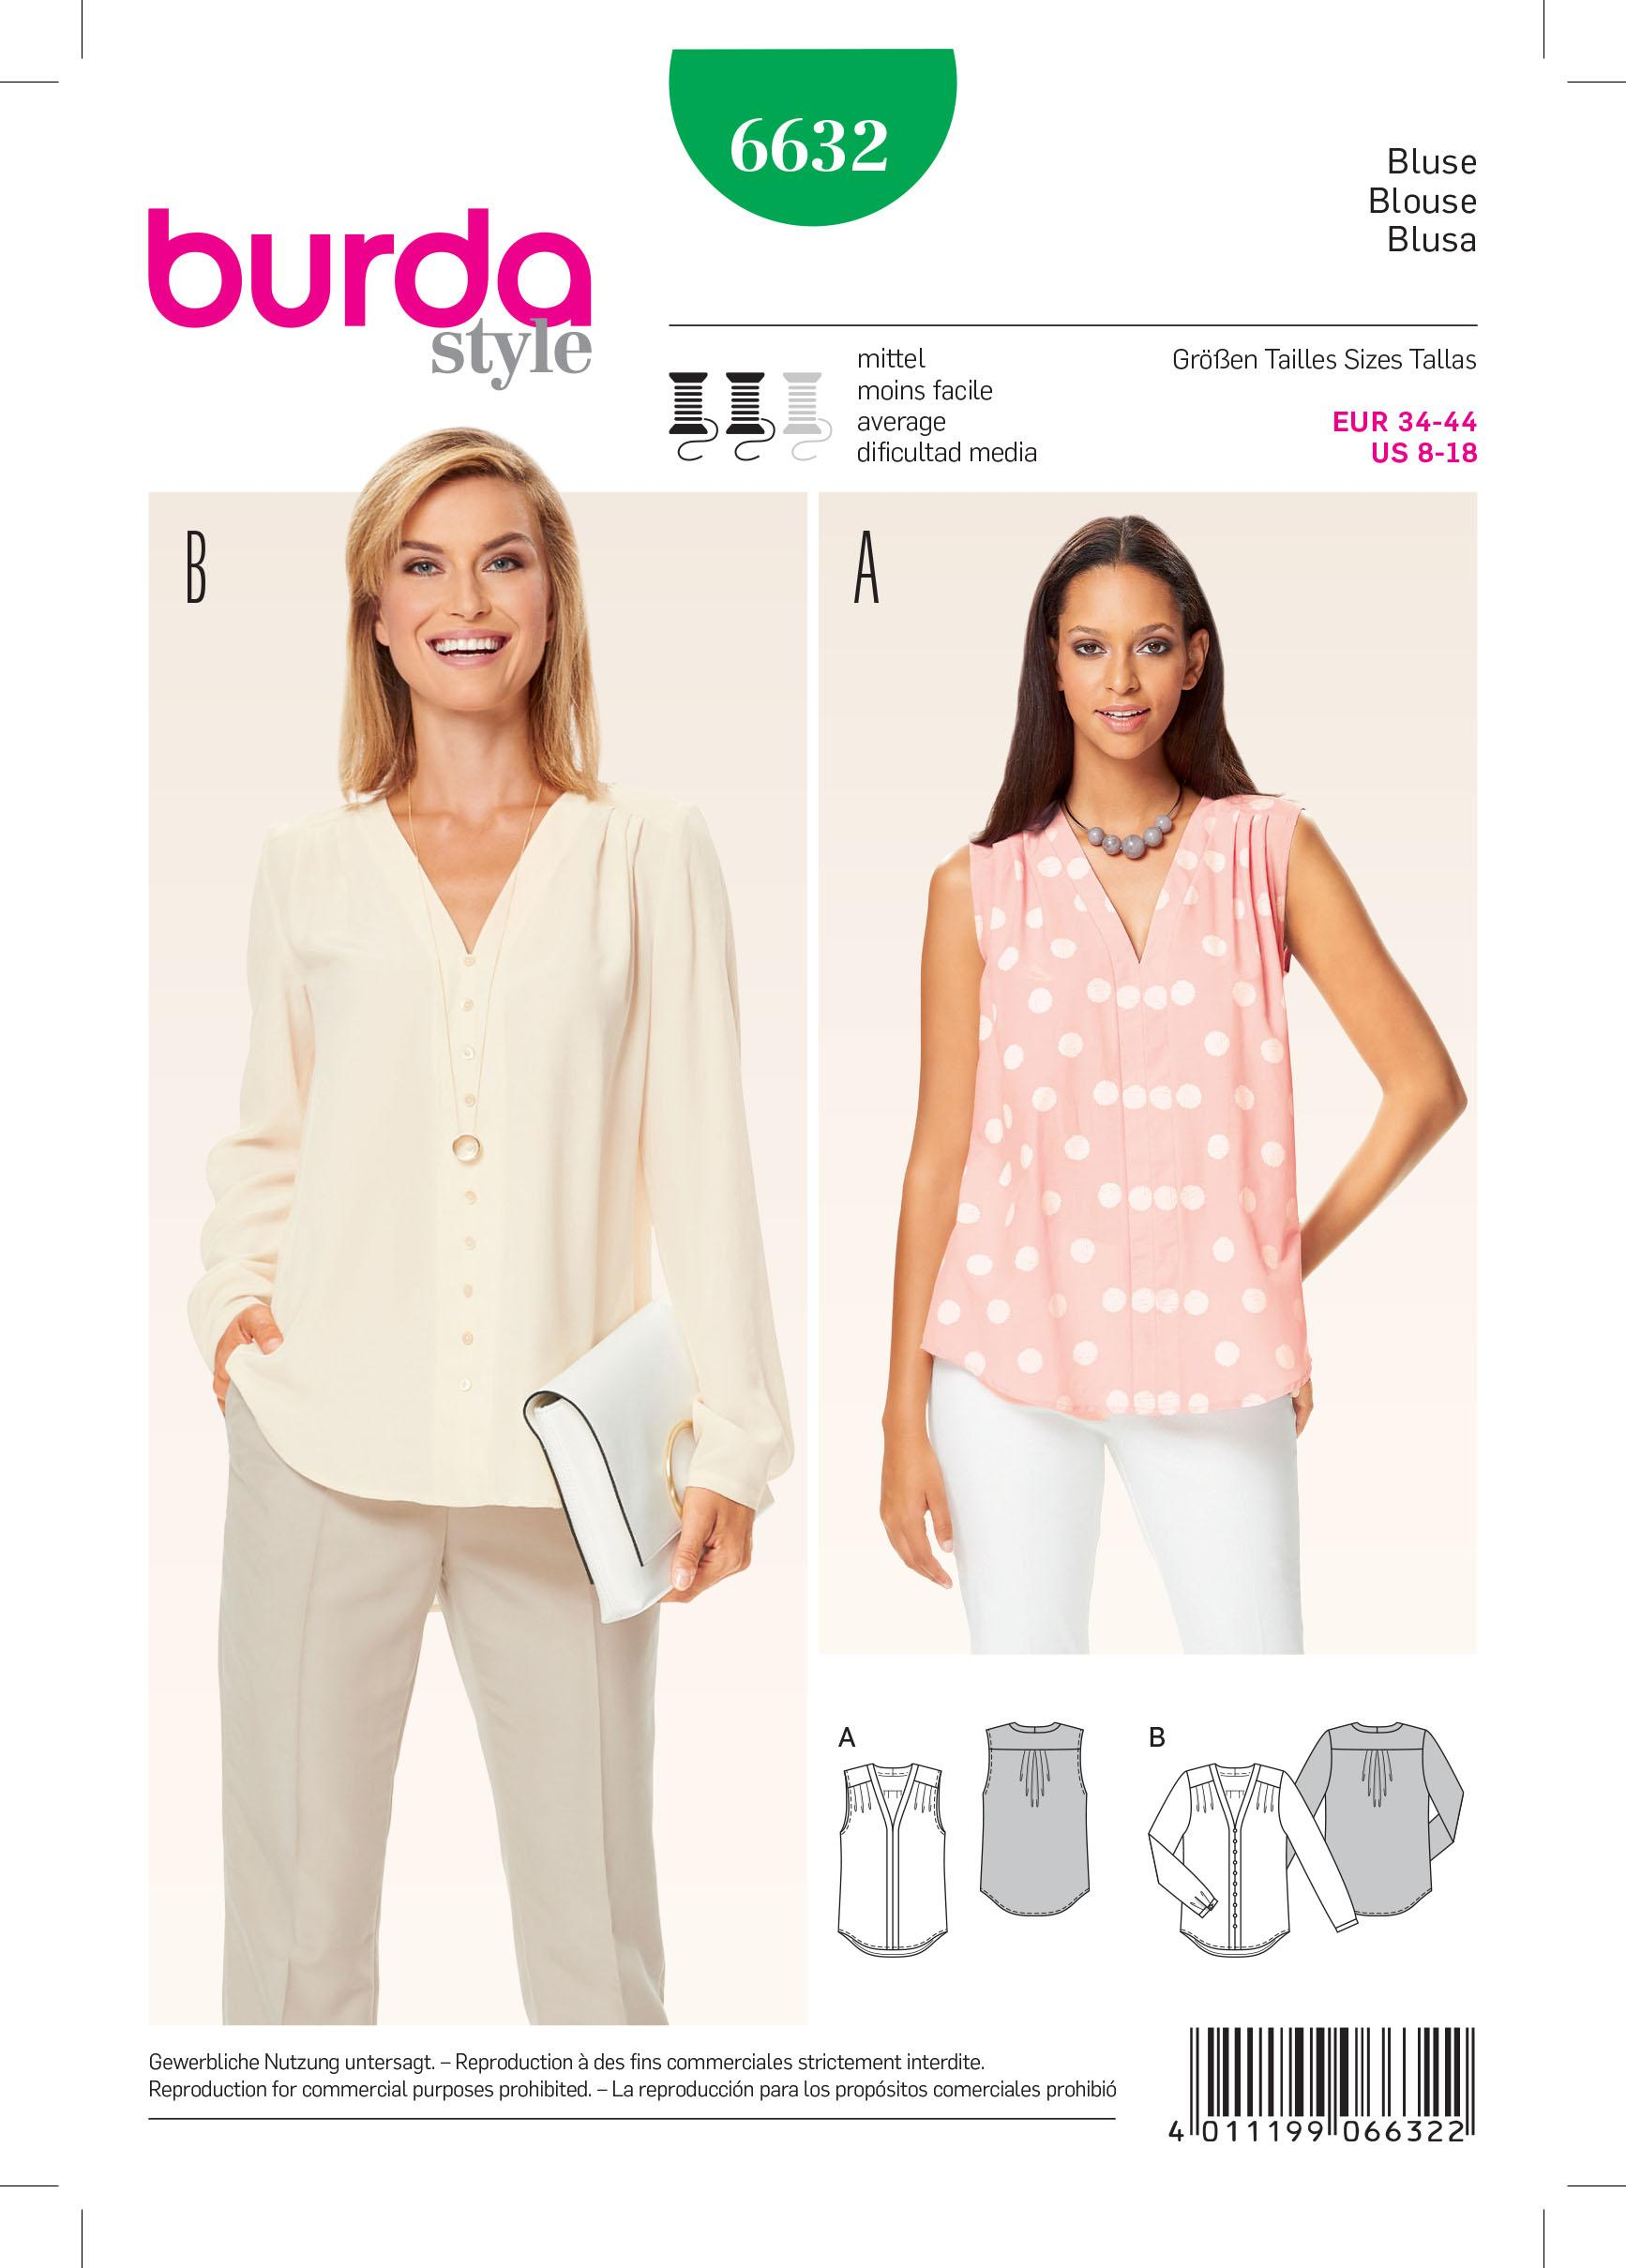 Burda B6632 Women's Blouse Sewing Pattern